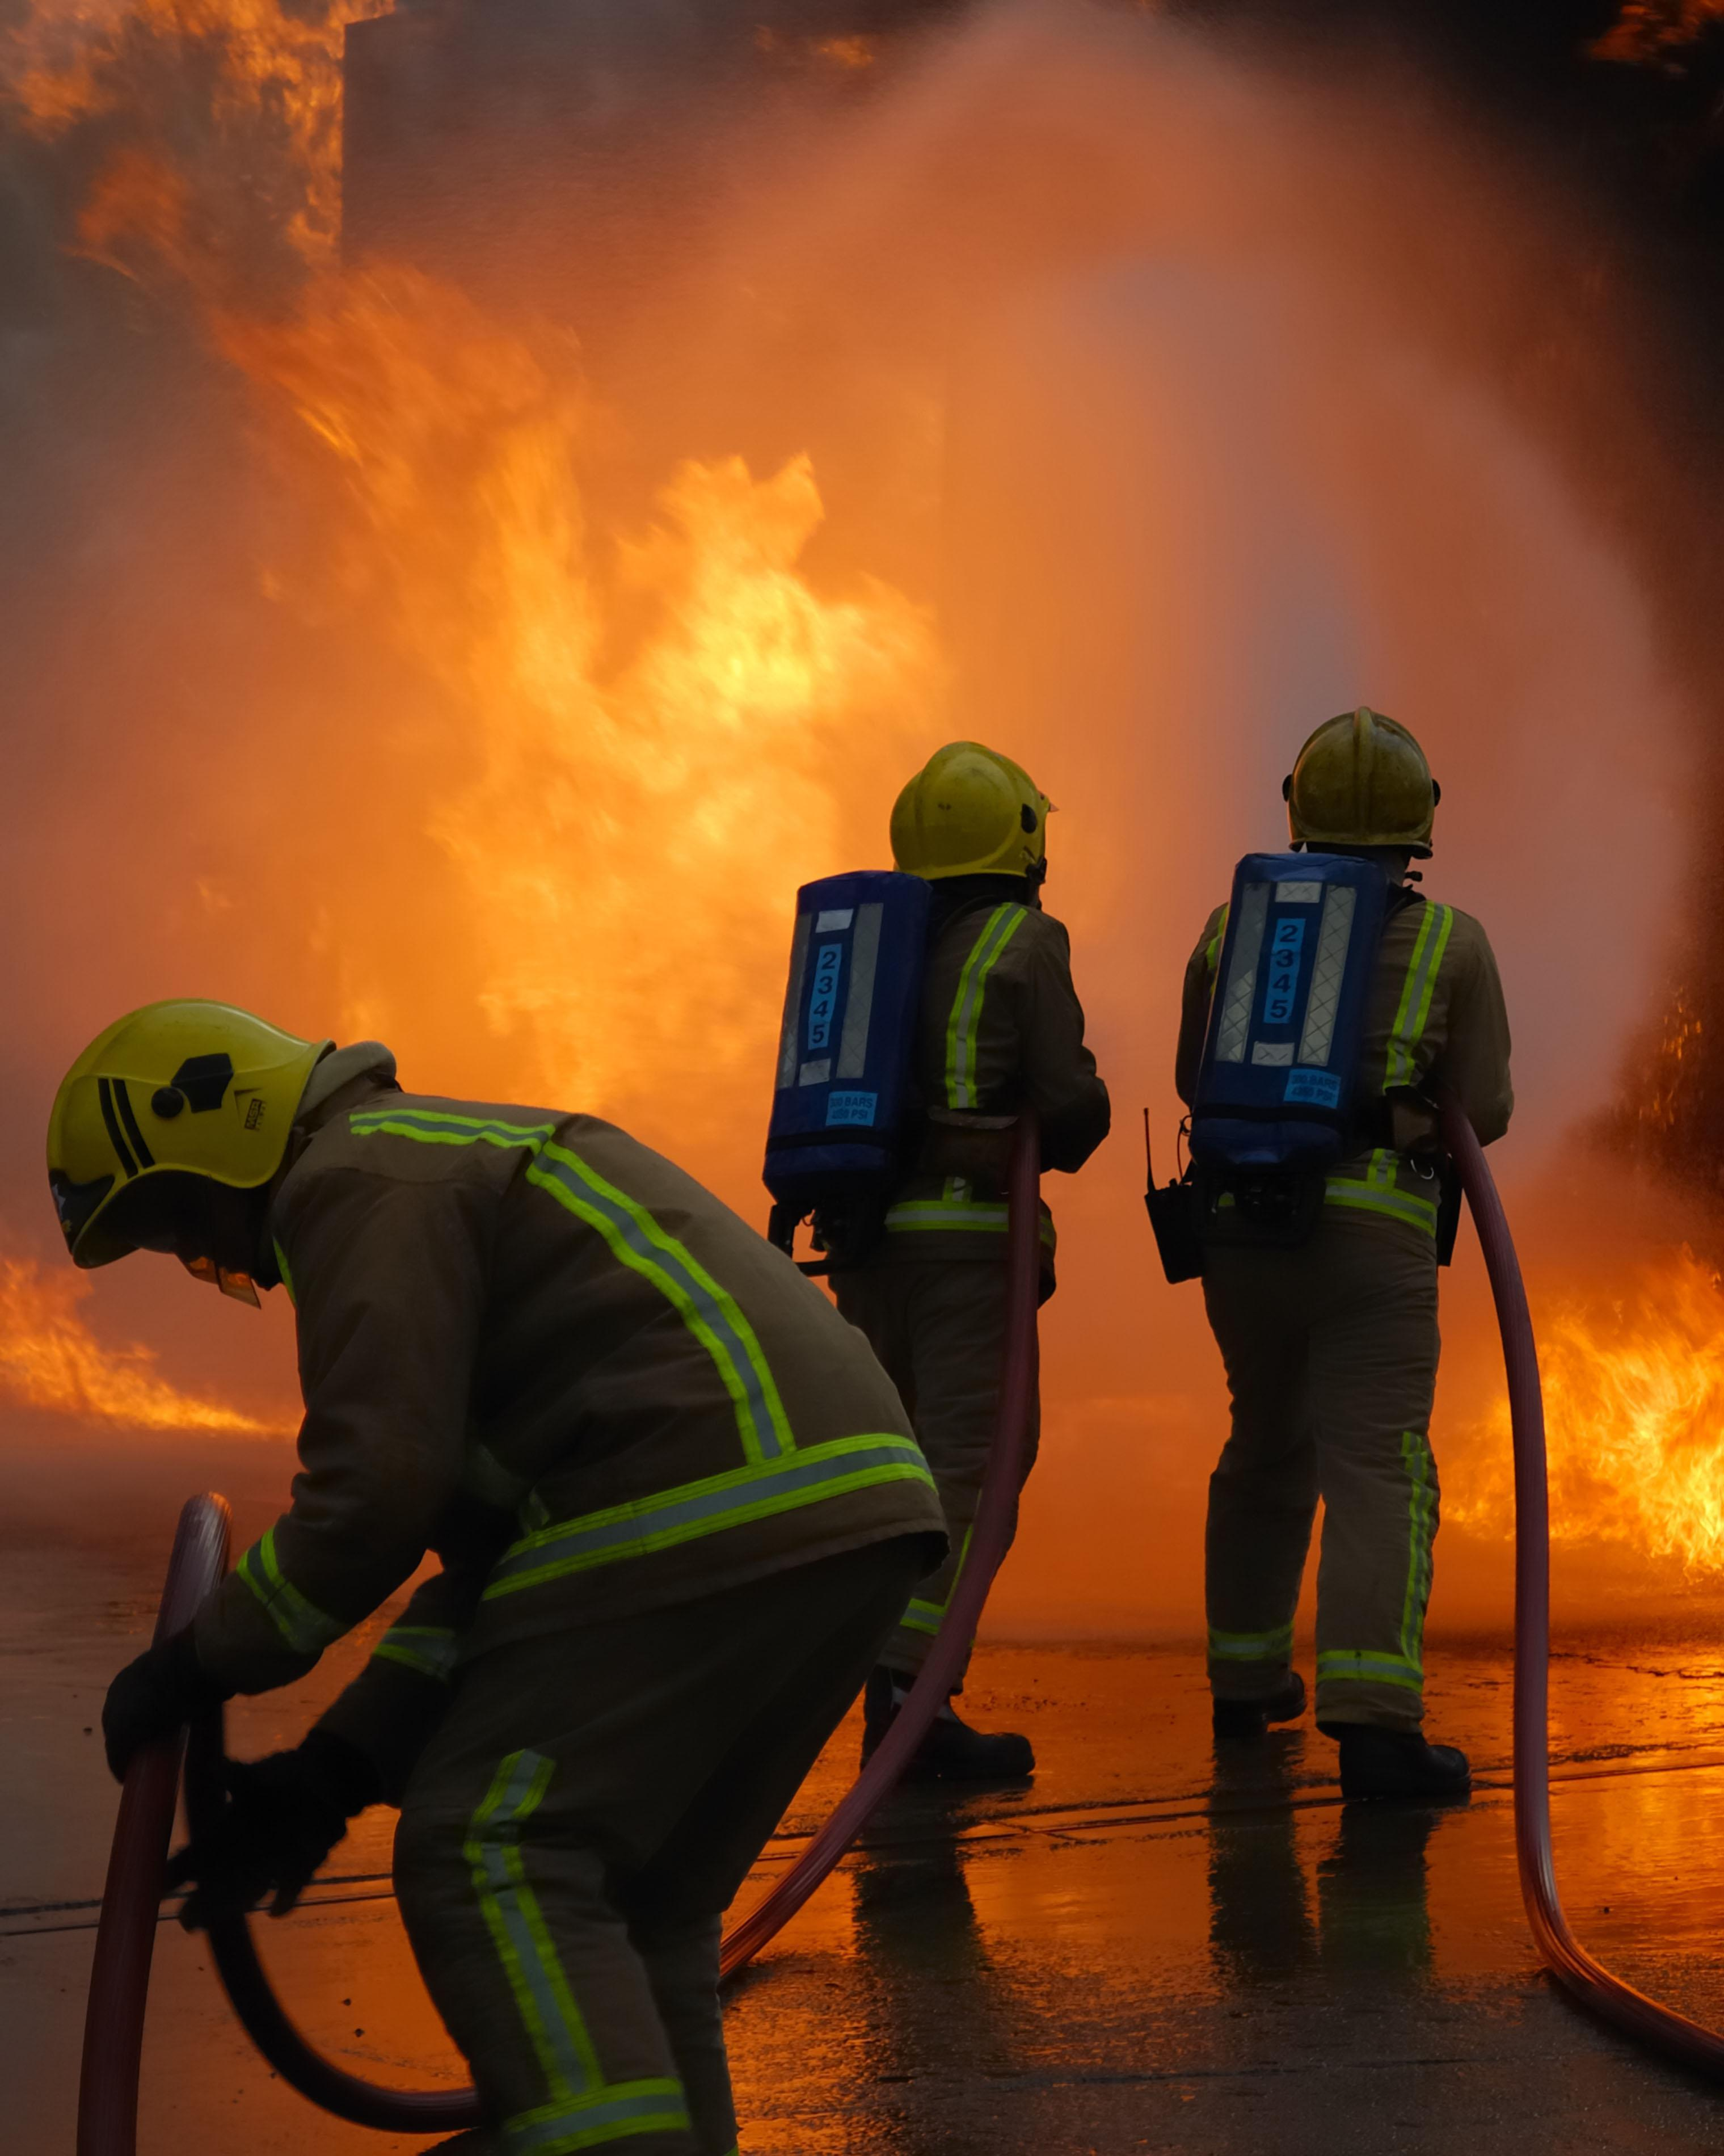 Firefighter trio tell police they started blazes 'for sheer joy of putting them out'